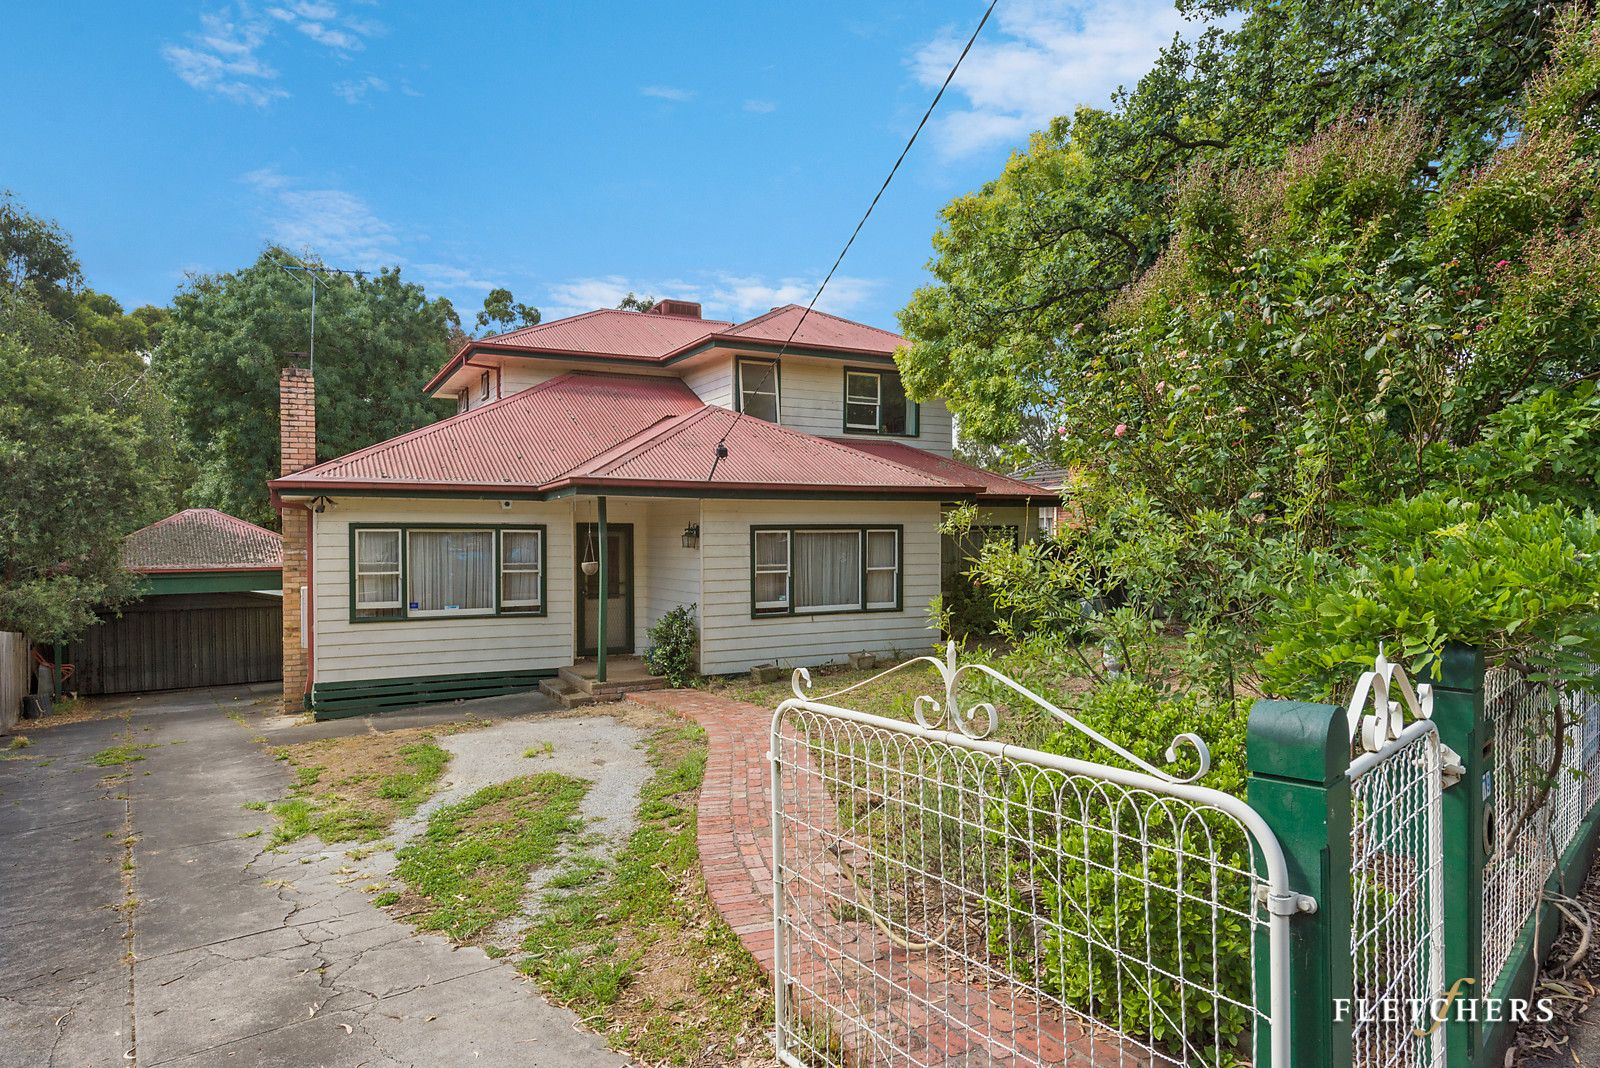 79 and/or 81 Peter Street, Box Hill North VIC 3129, Image 0